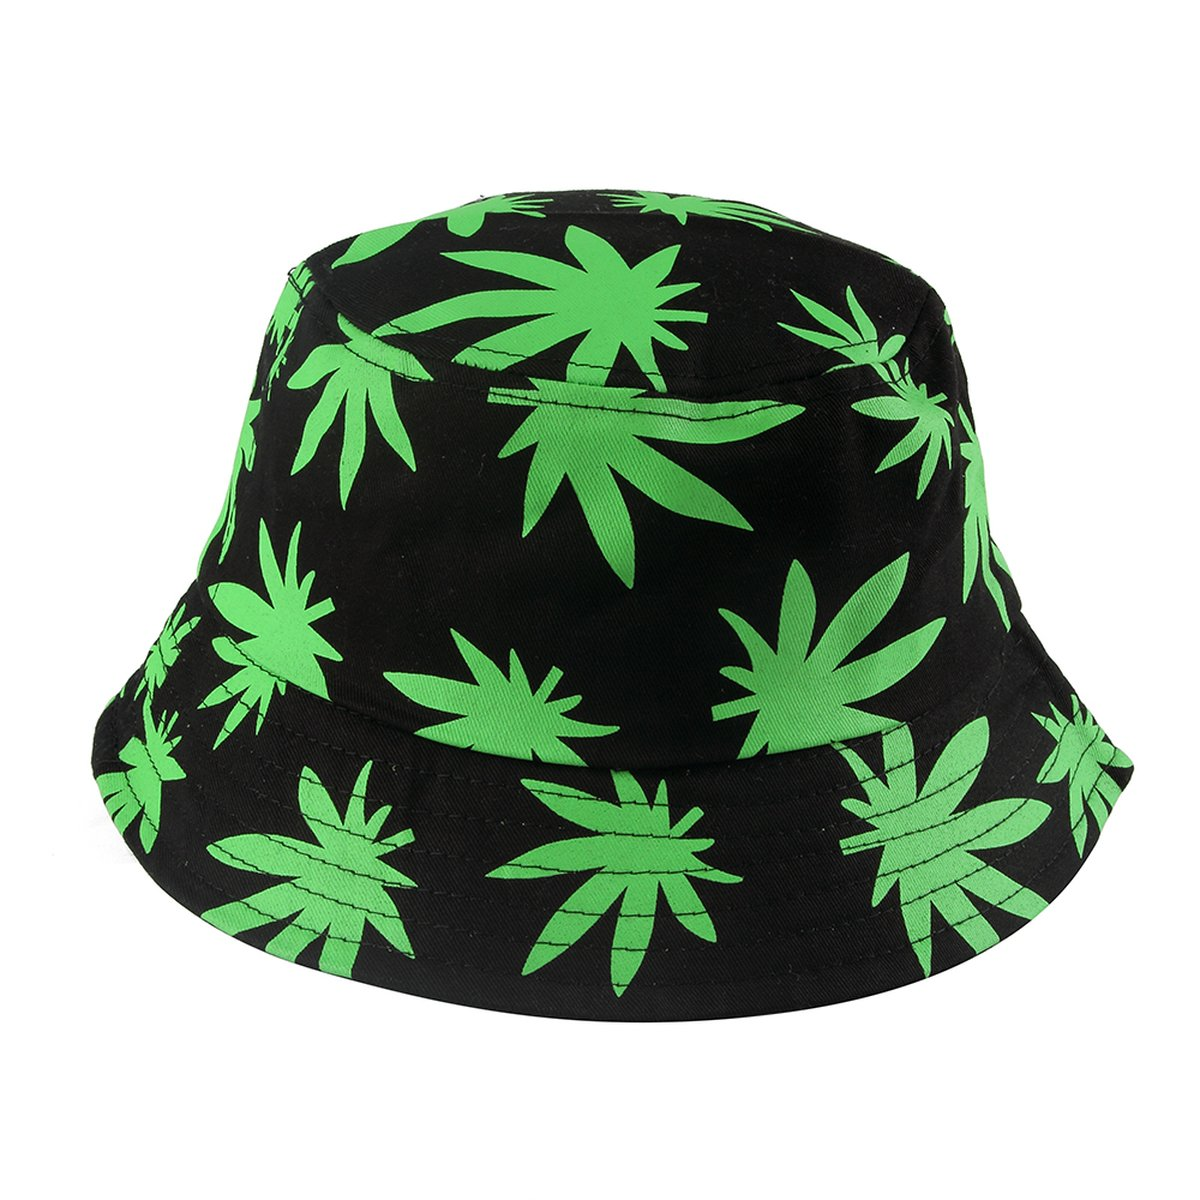 AOBRITON Summer Leaves Print Fisherman Hat Bucket Hat Hip Hop for Travel Vacation Beach